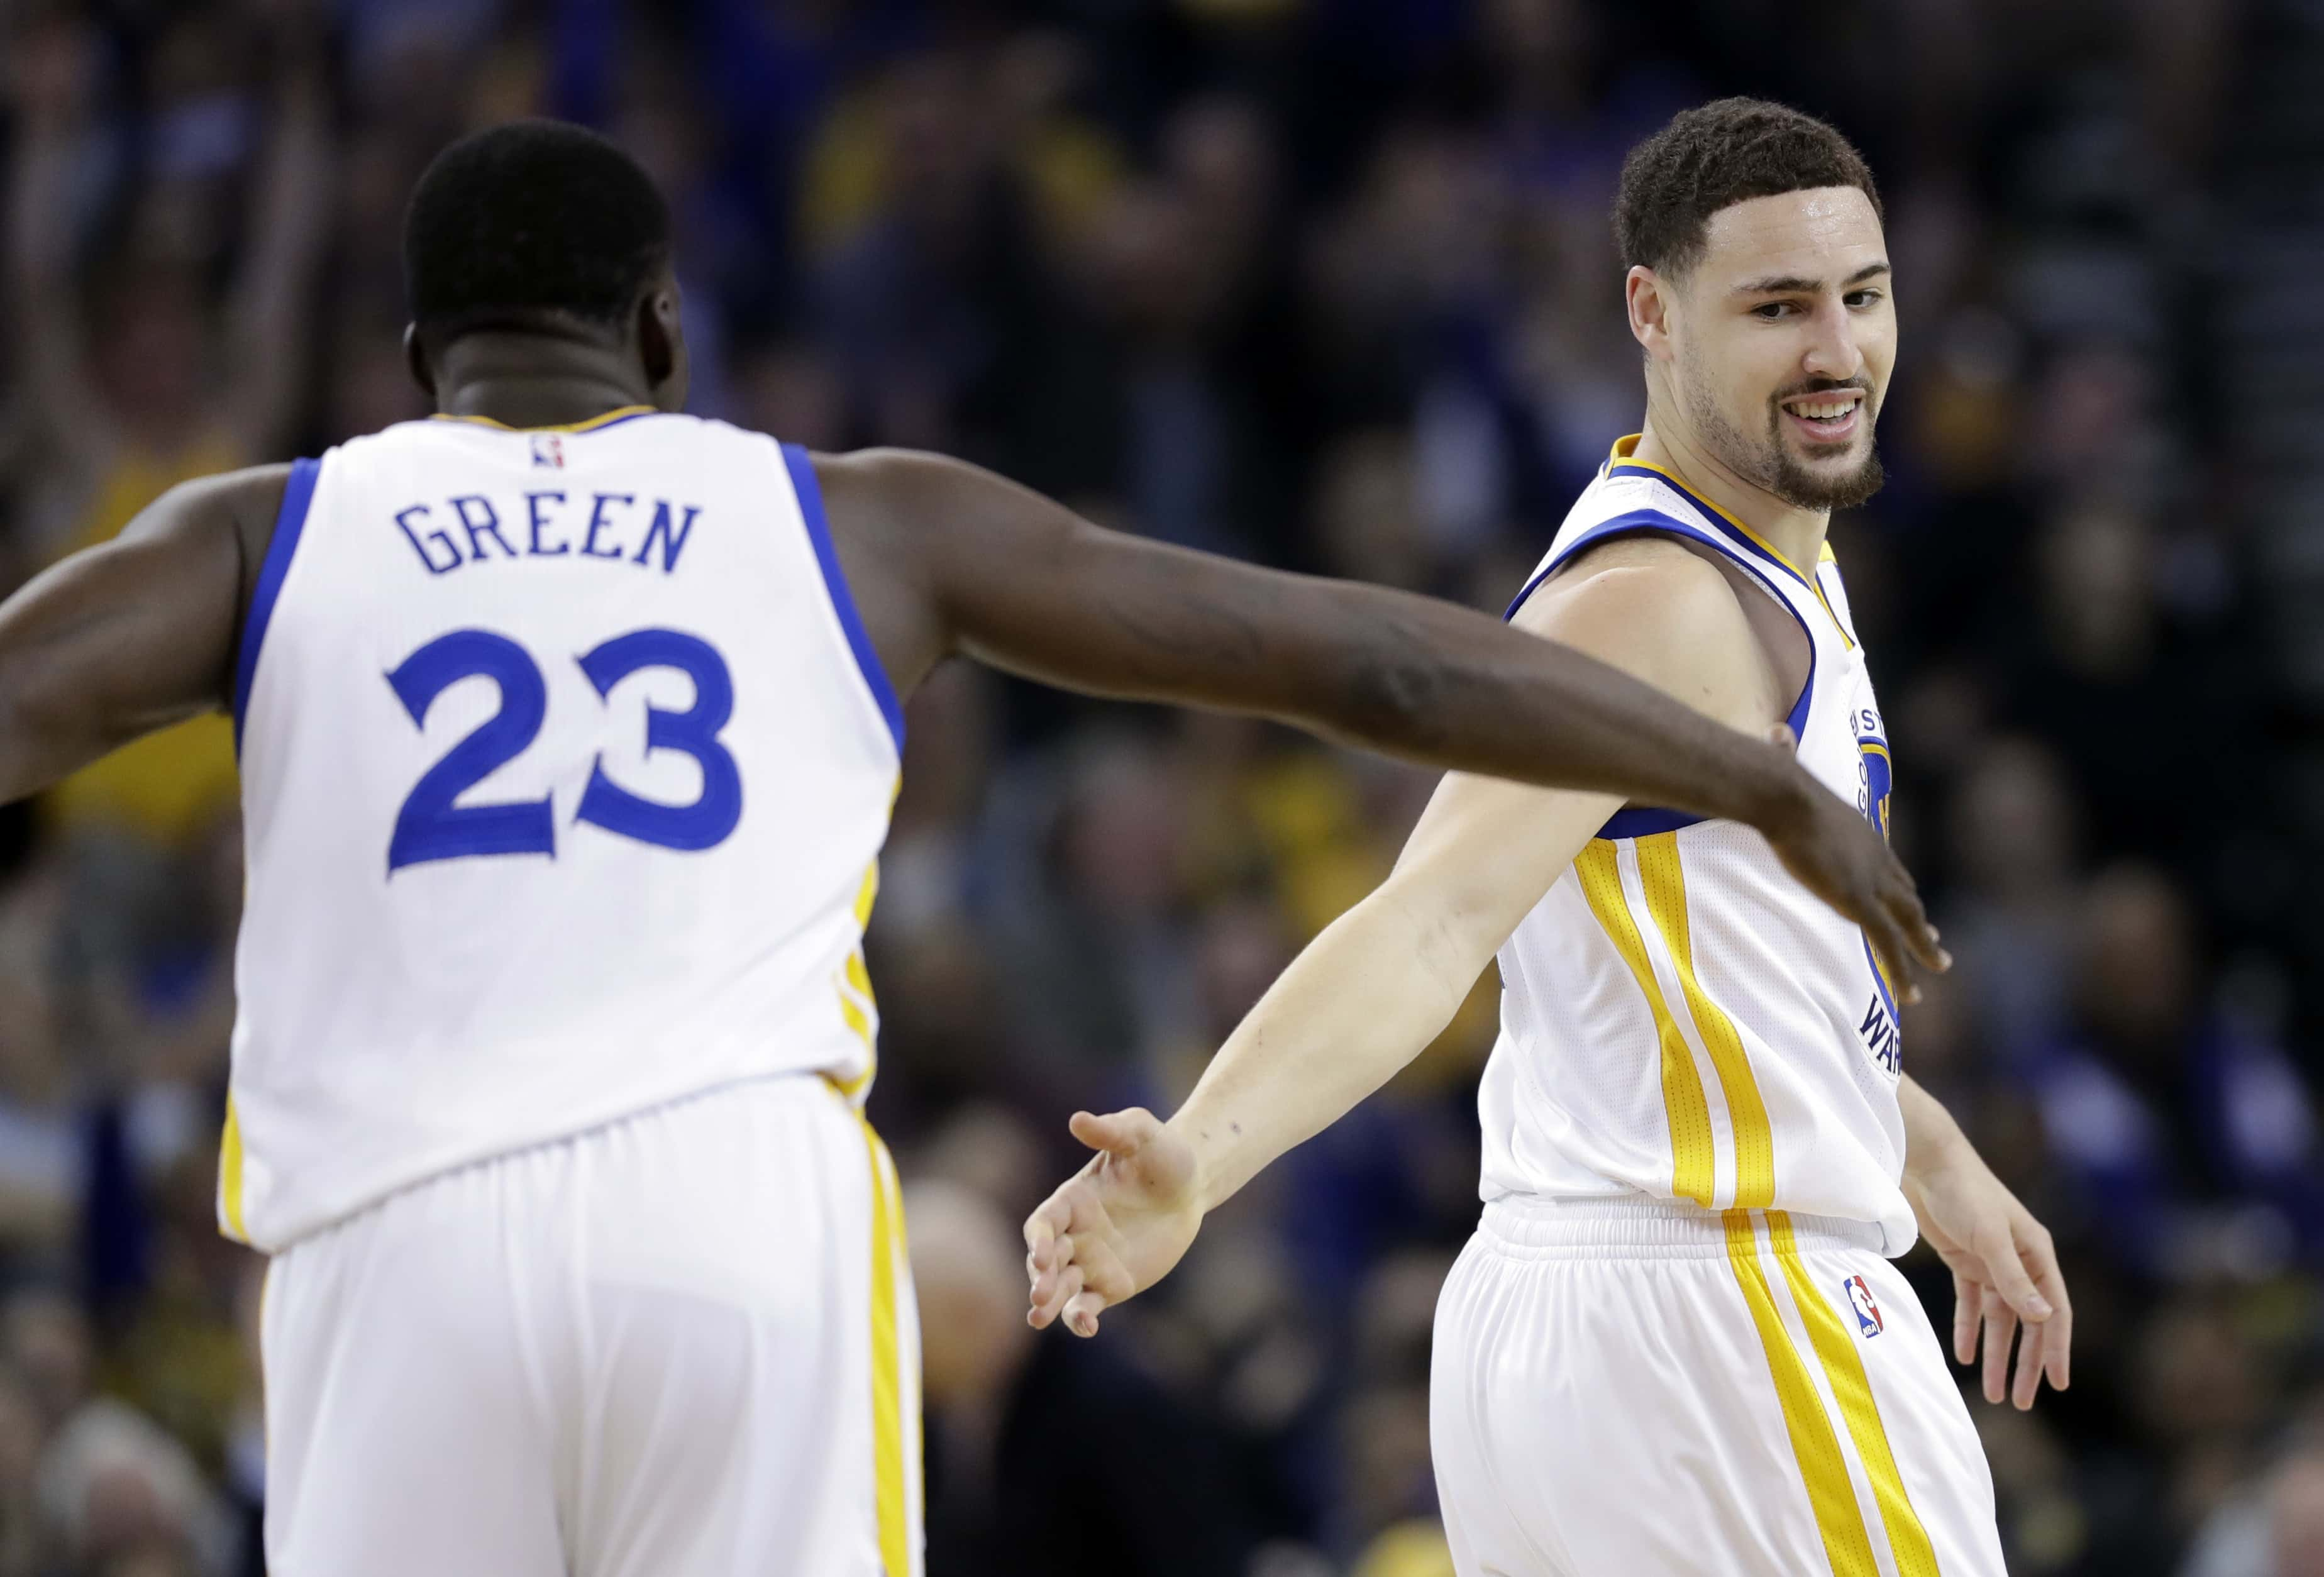 Golden State Warriors' Klay Thompson, right, shakes hands with teammate Draymond Green (23) after Thompson scored during the first half of an NBA basketball game against the Charlotte Hornets on Wednesday, Feb. 1, 2017, in Oakland, Calif. (AP Photo/Marcio Jose Sanchez)